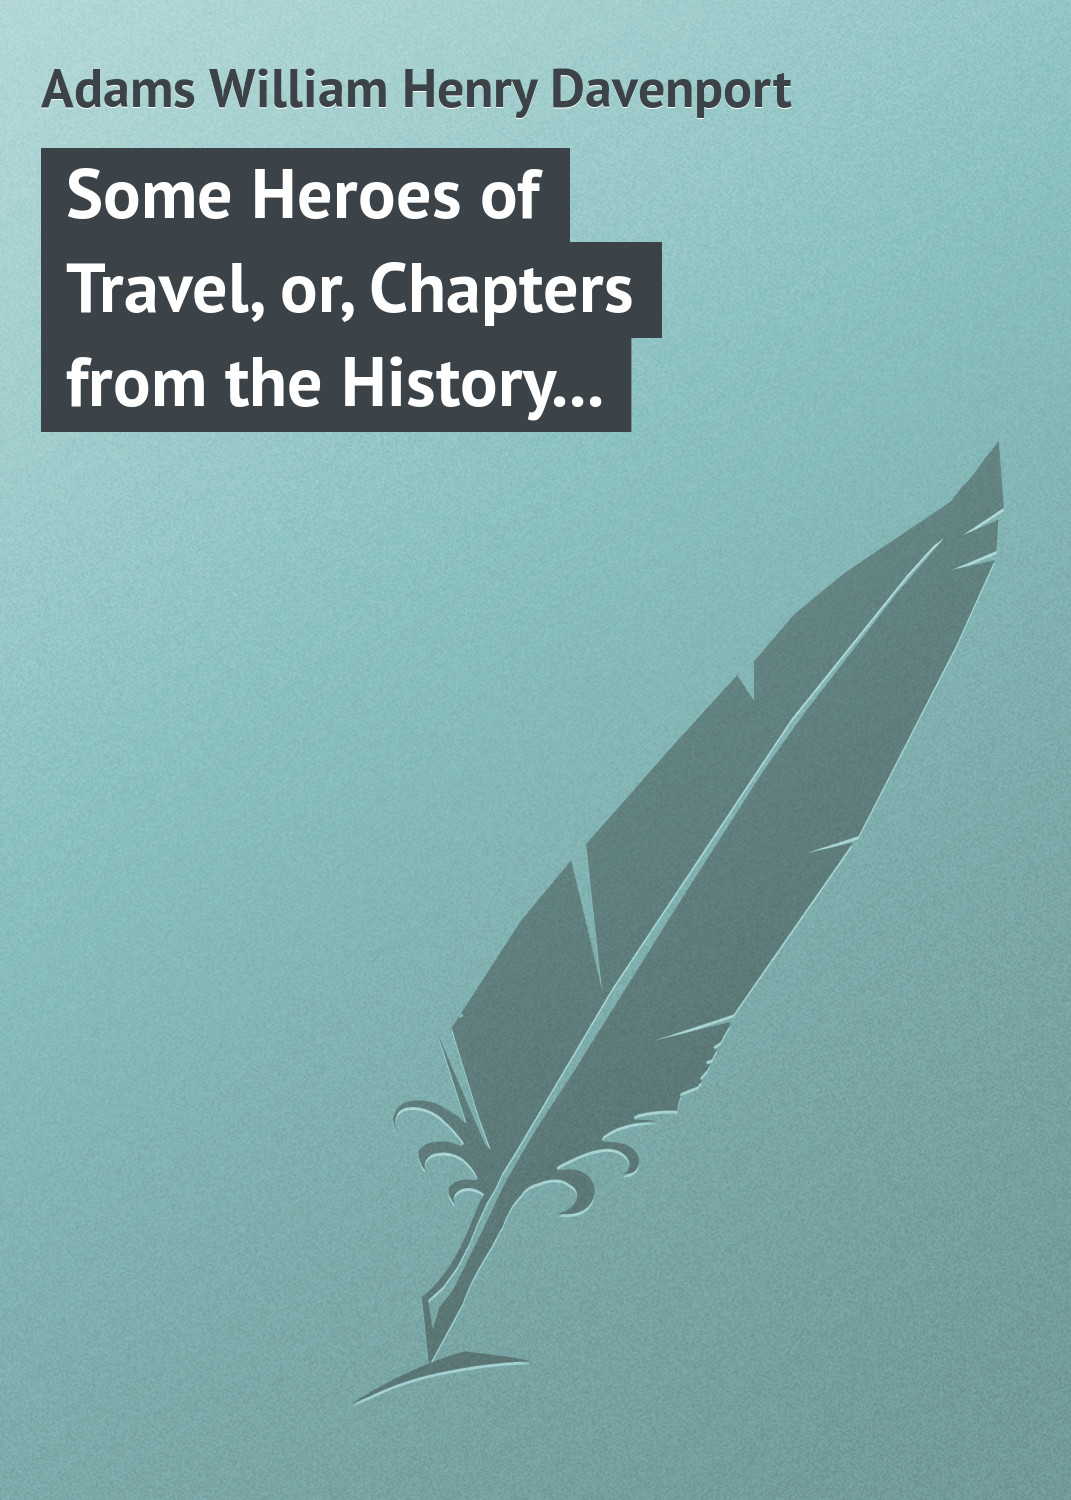 Adams William Henry Davenport Some Heroes of Travel, or, Chapters from the History of Geographical Discovery and Enterprise history heroes neil armstrong